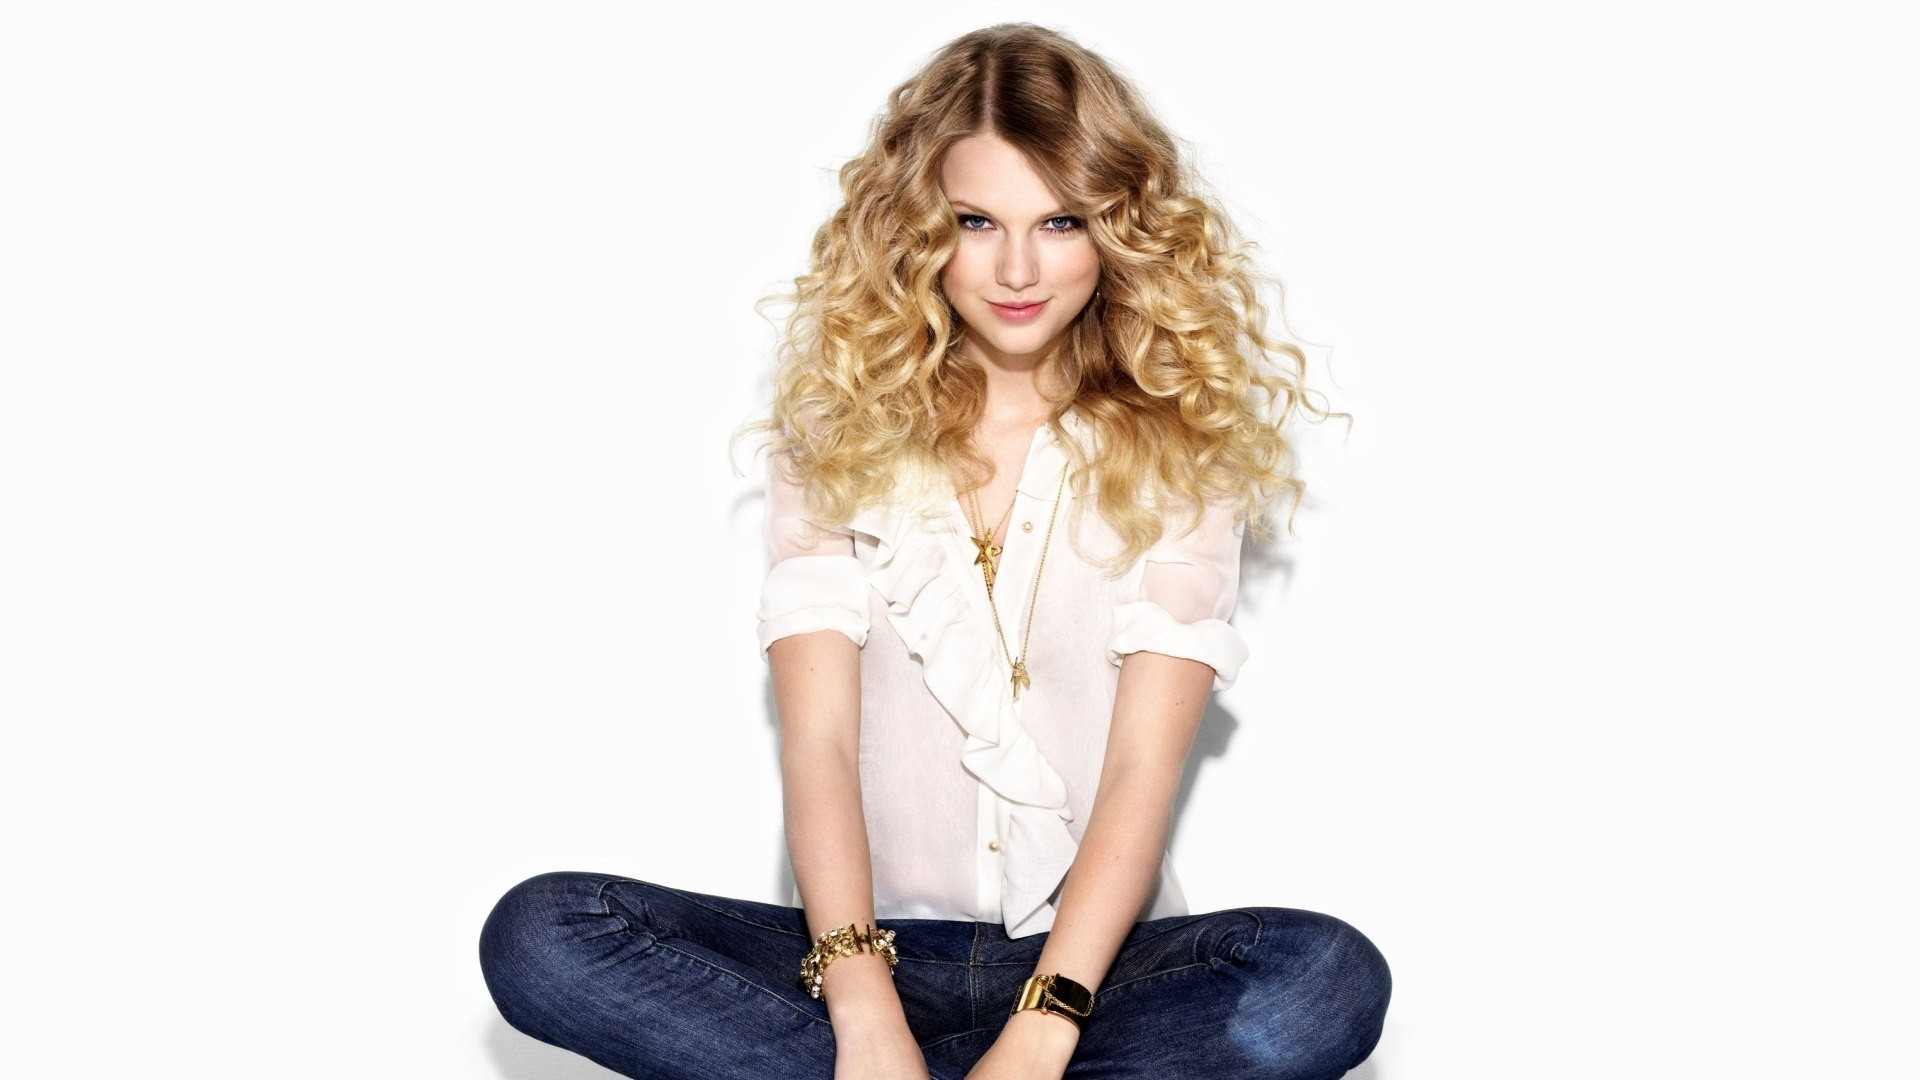 blondes woman jeans taylor HD Wallpaper